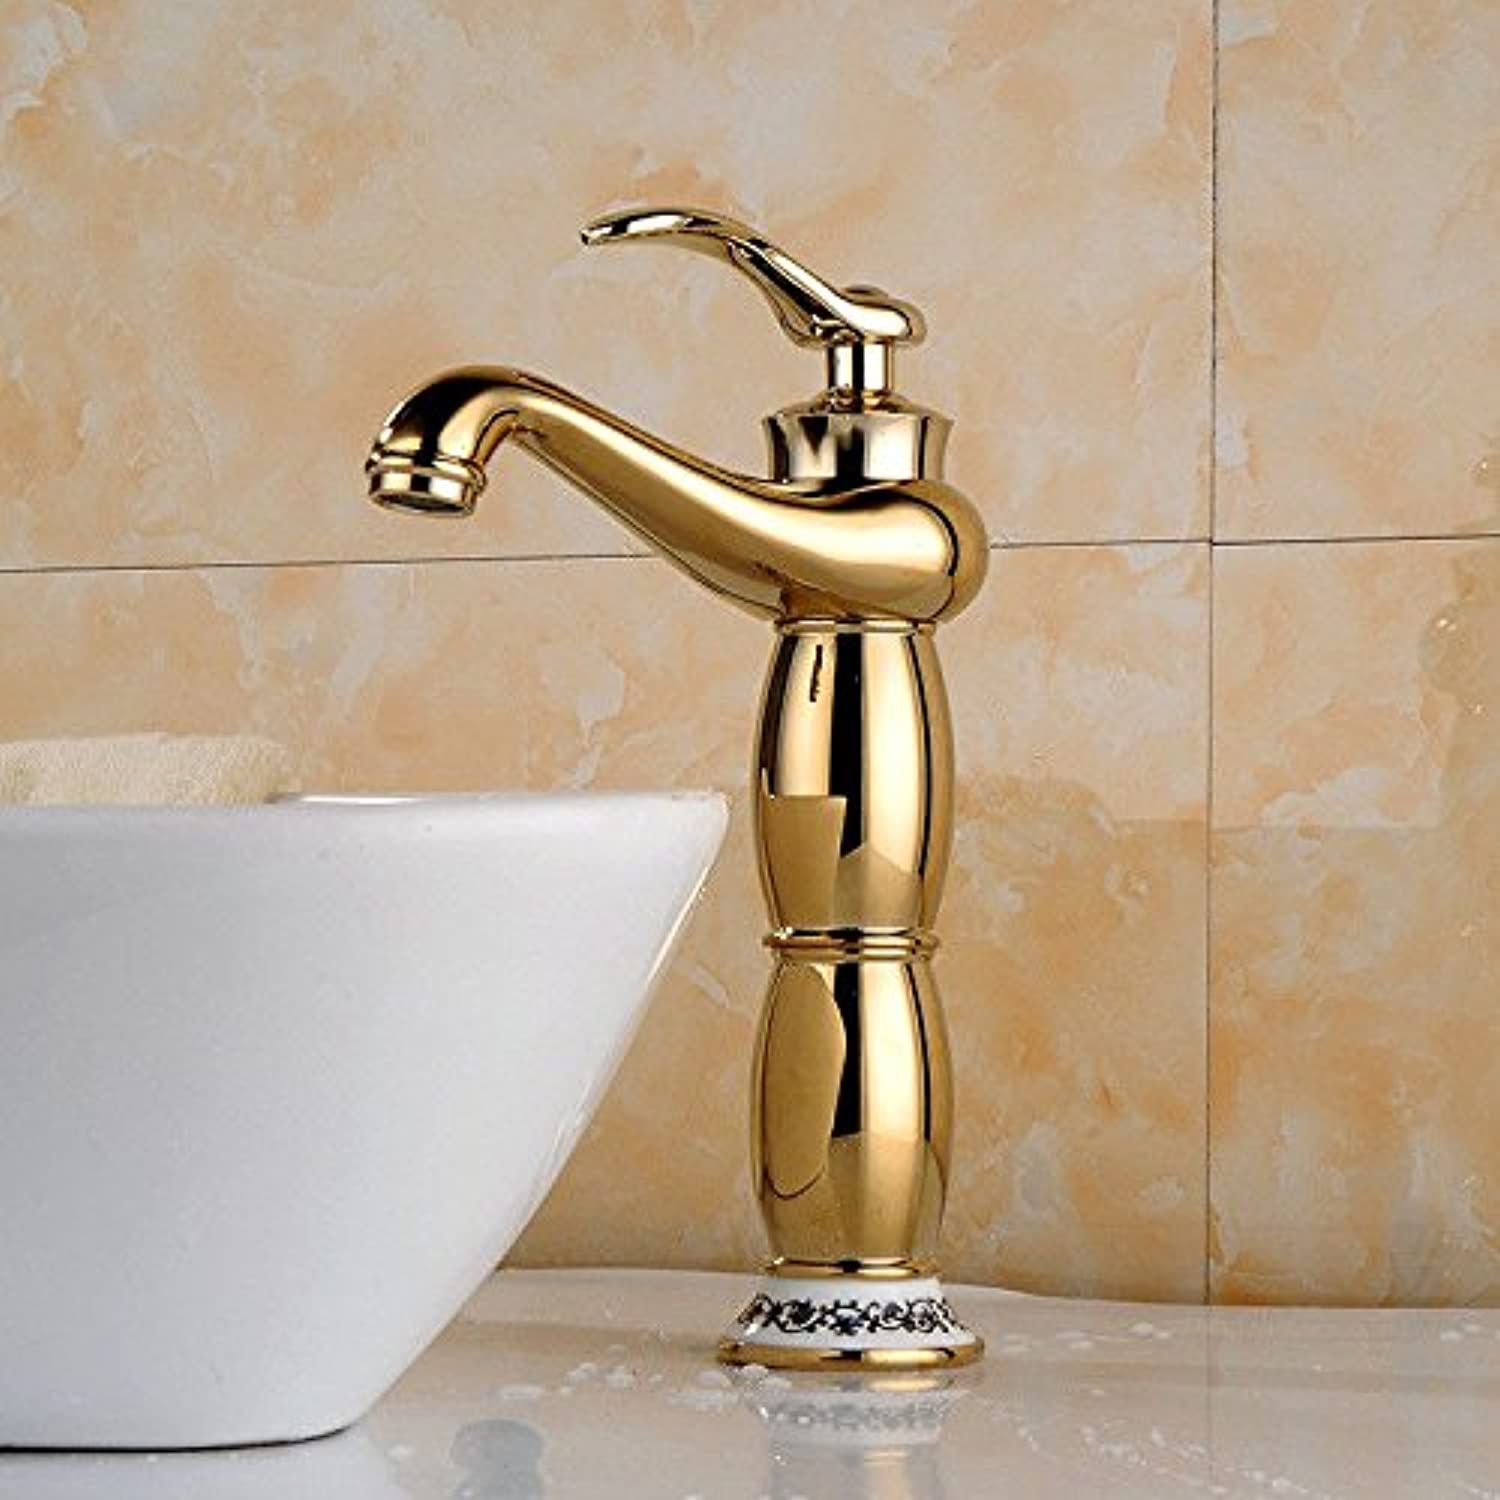 AQMMi Basin Taps Bathroom Sink Faucet Copper Single Lever Chrome Plated 1 Hole Bathroom Sink Faucet Basin Mixer Tap